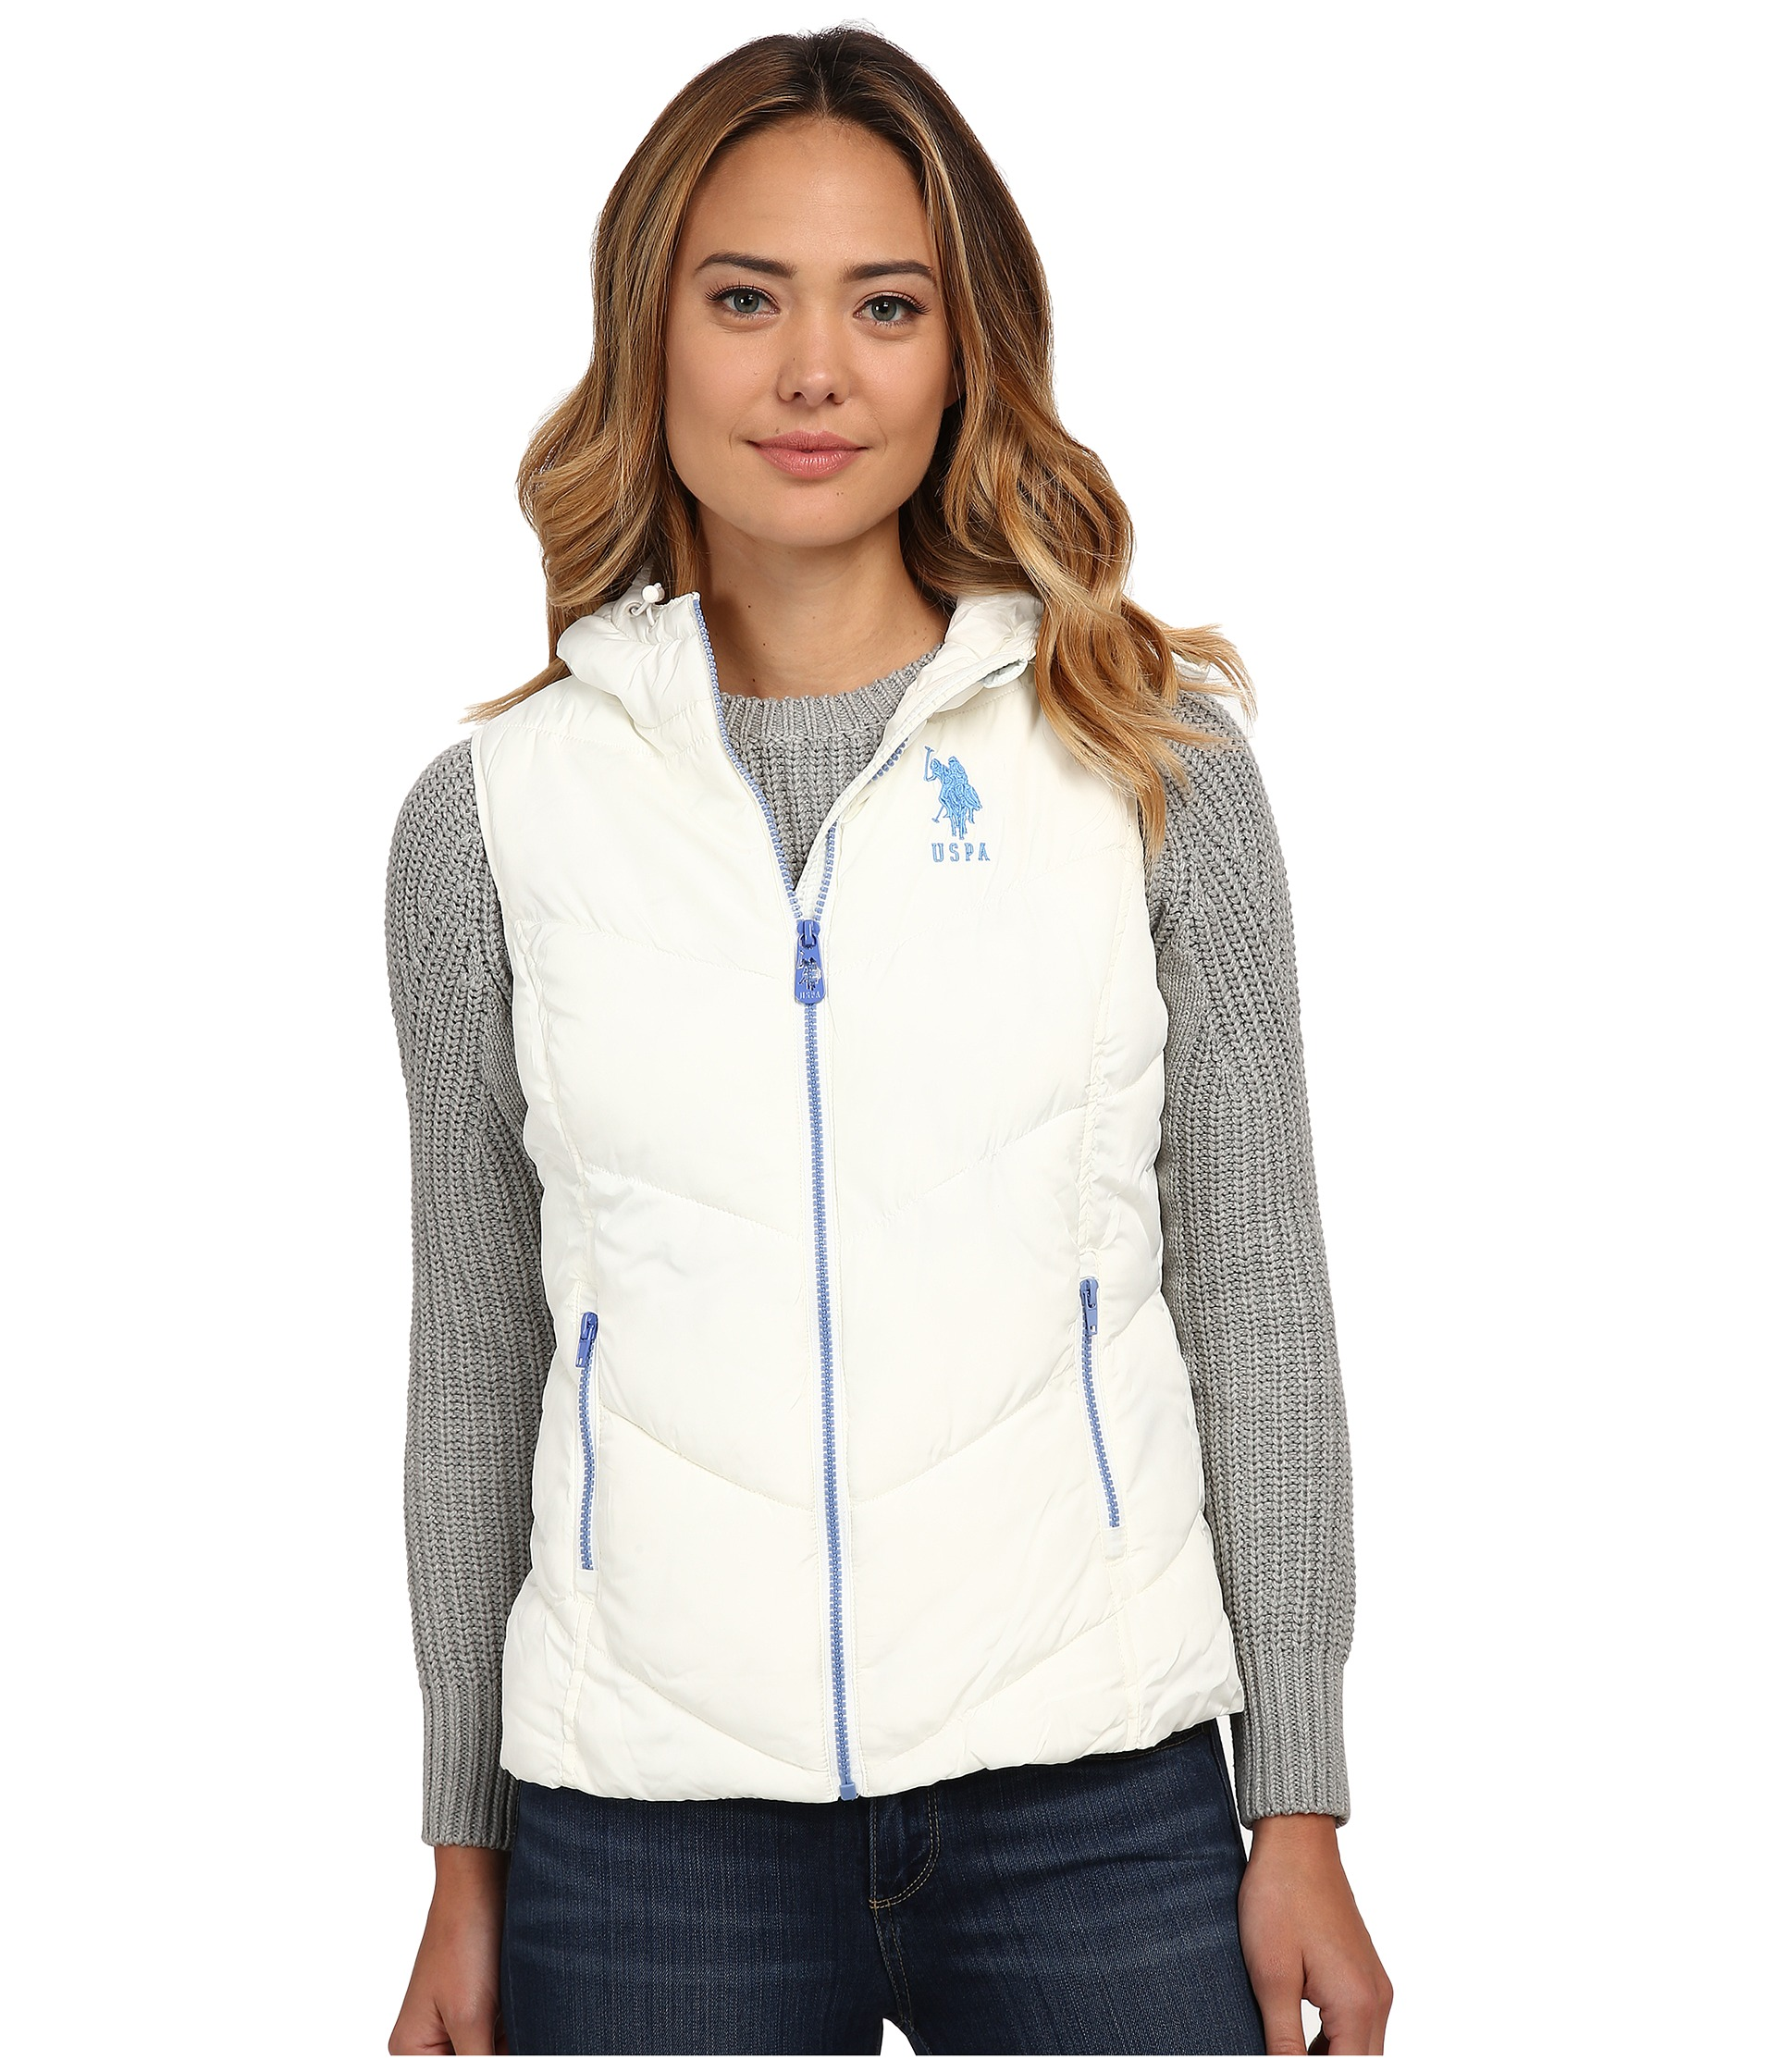 U.S. POLO ASSN. Hooded Vest with Contrast Zippers $34.99 (33% off MSRP $52.00